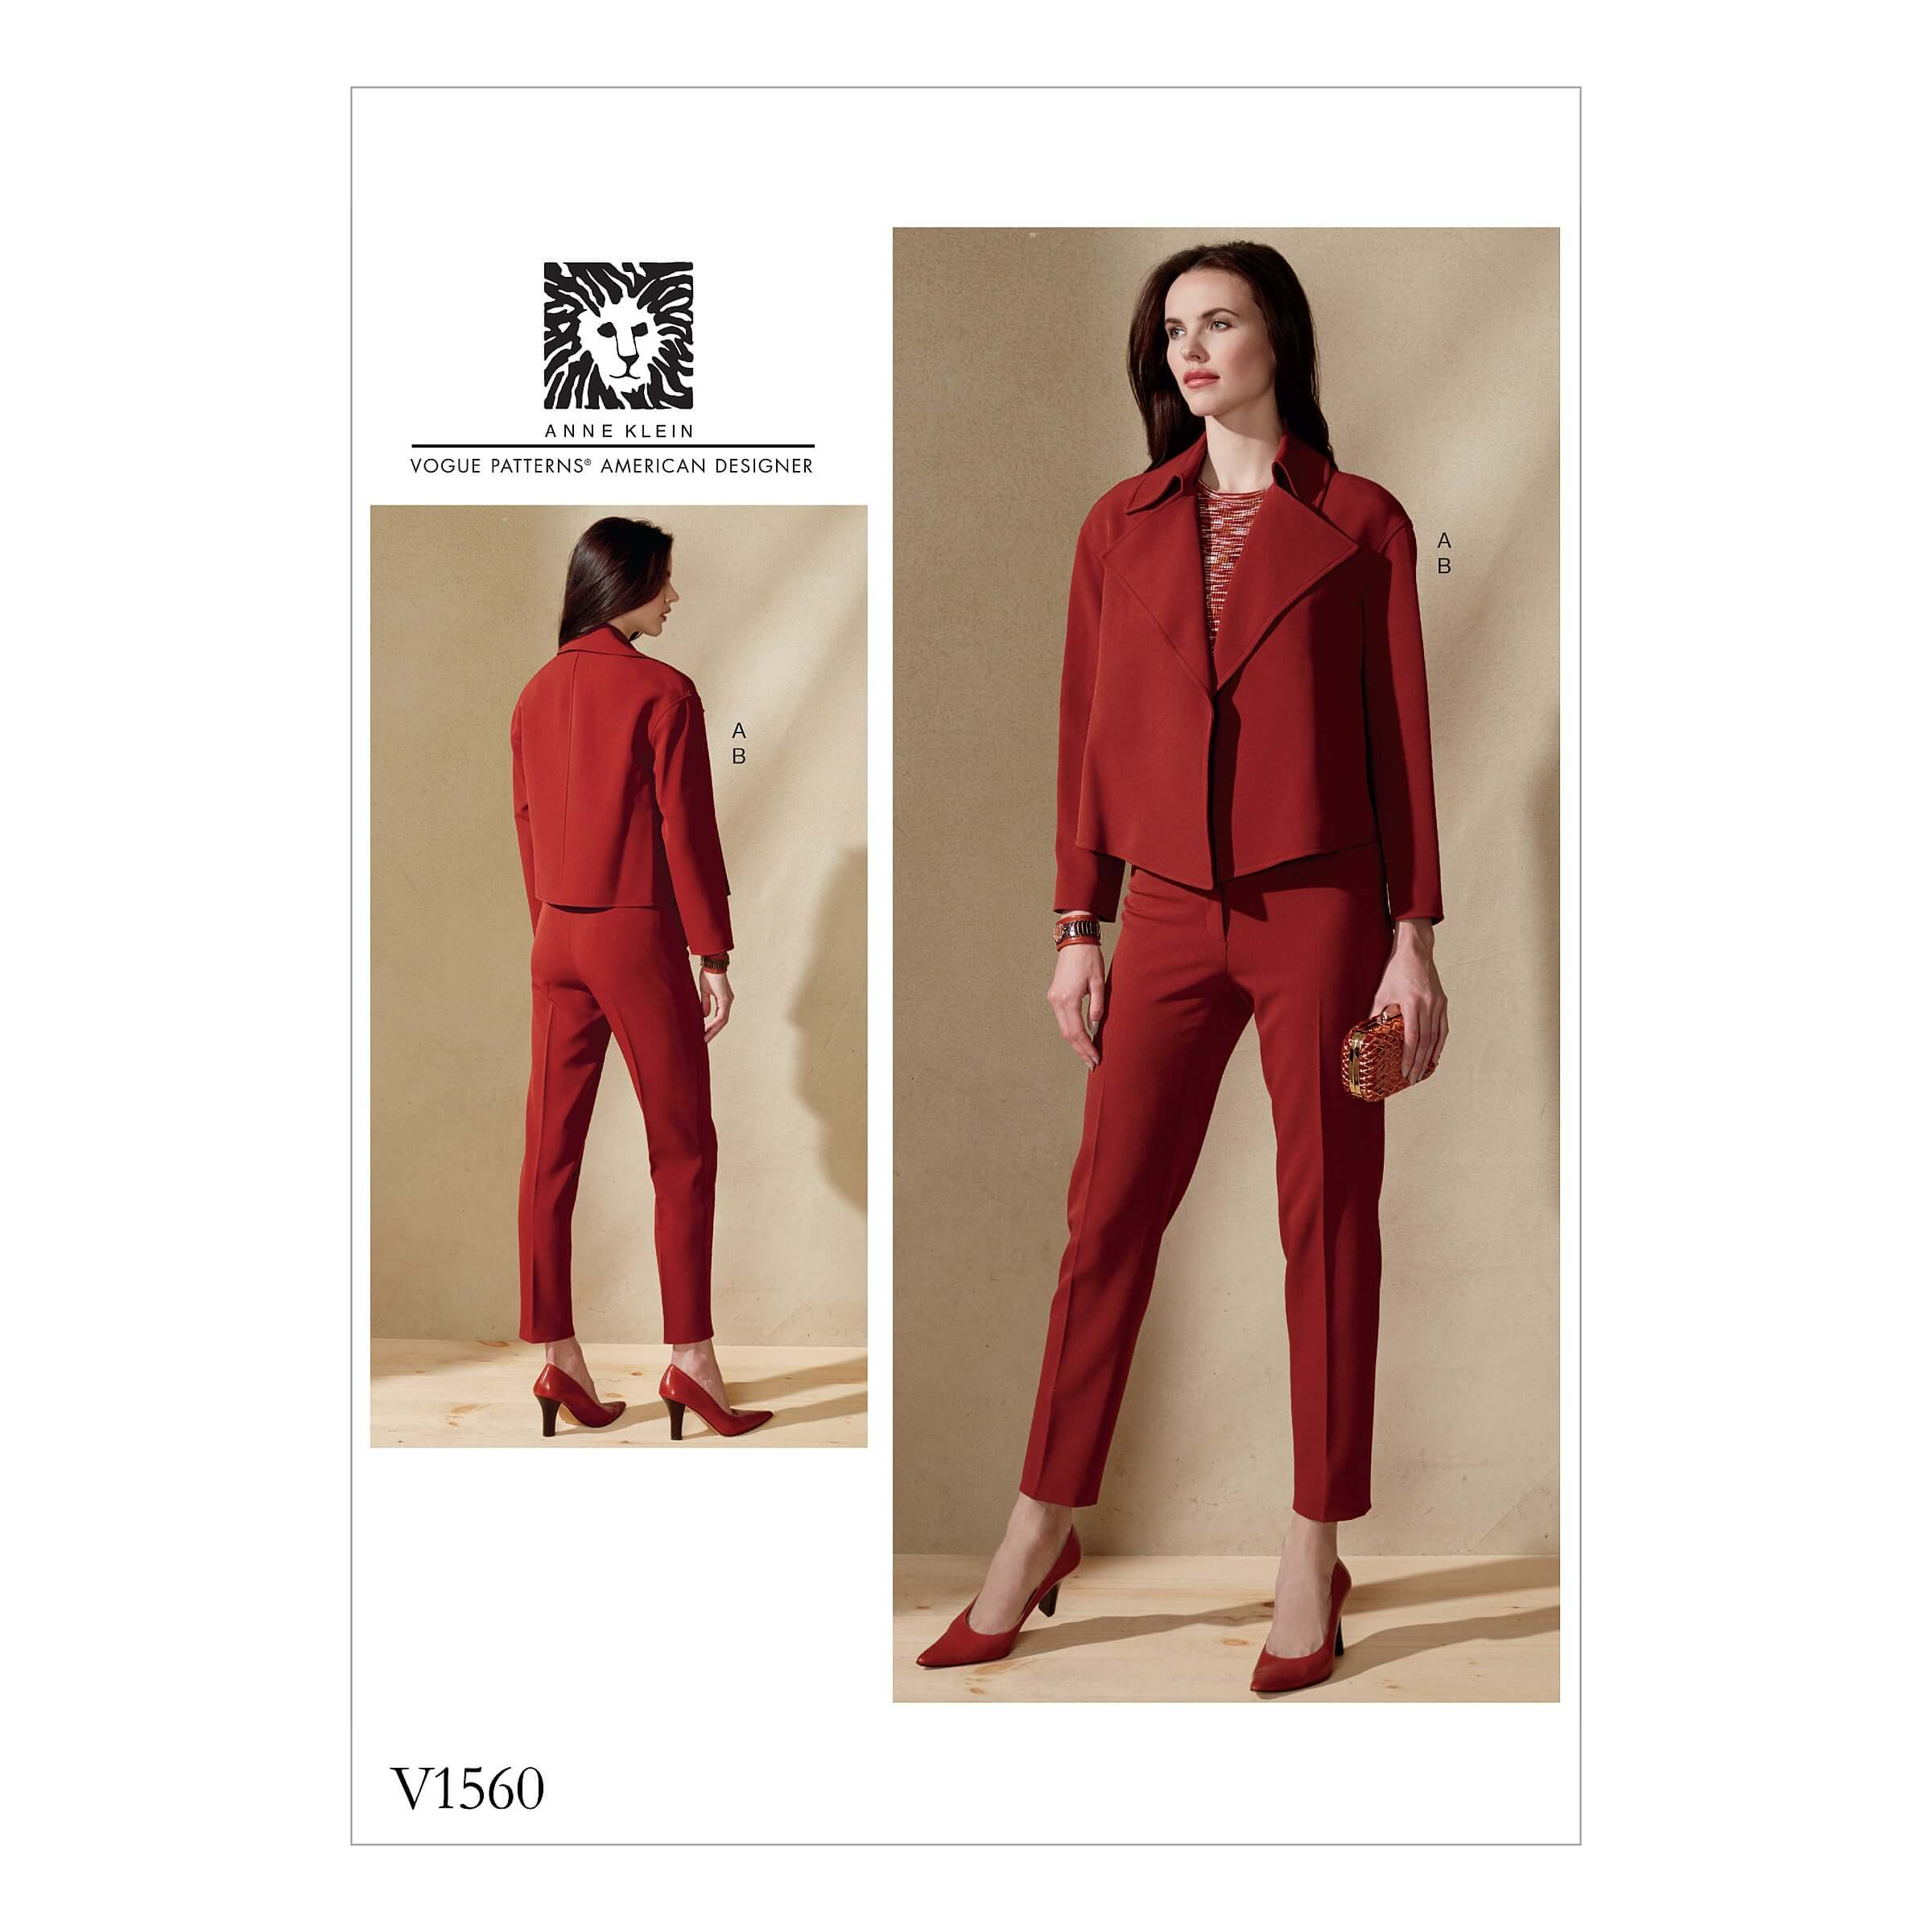 Vogue Sewing Pattern V1560 Women's Open Jacket and Slim Trousers